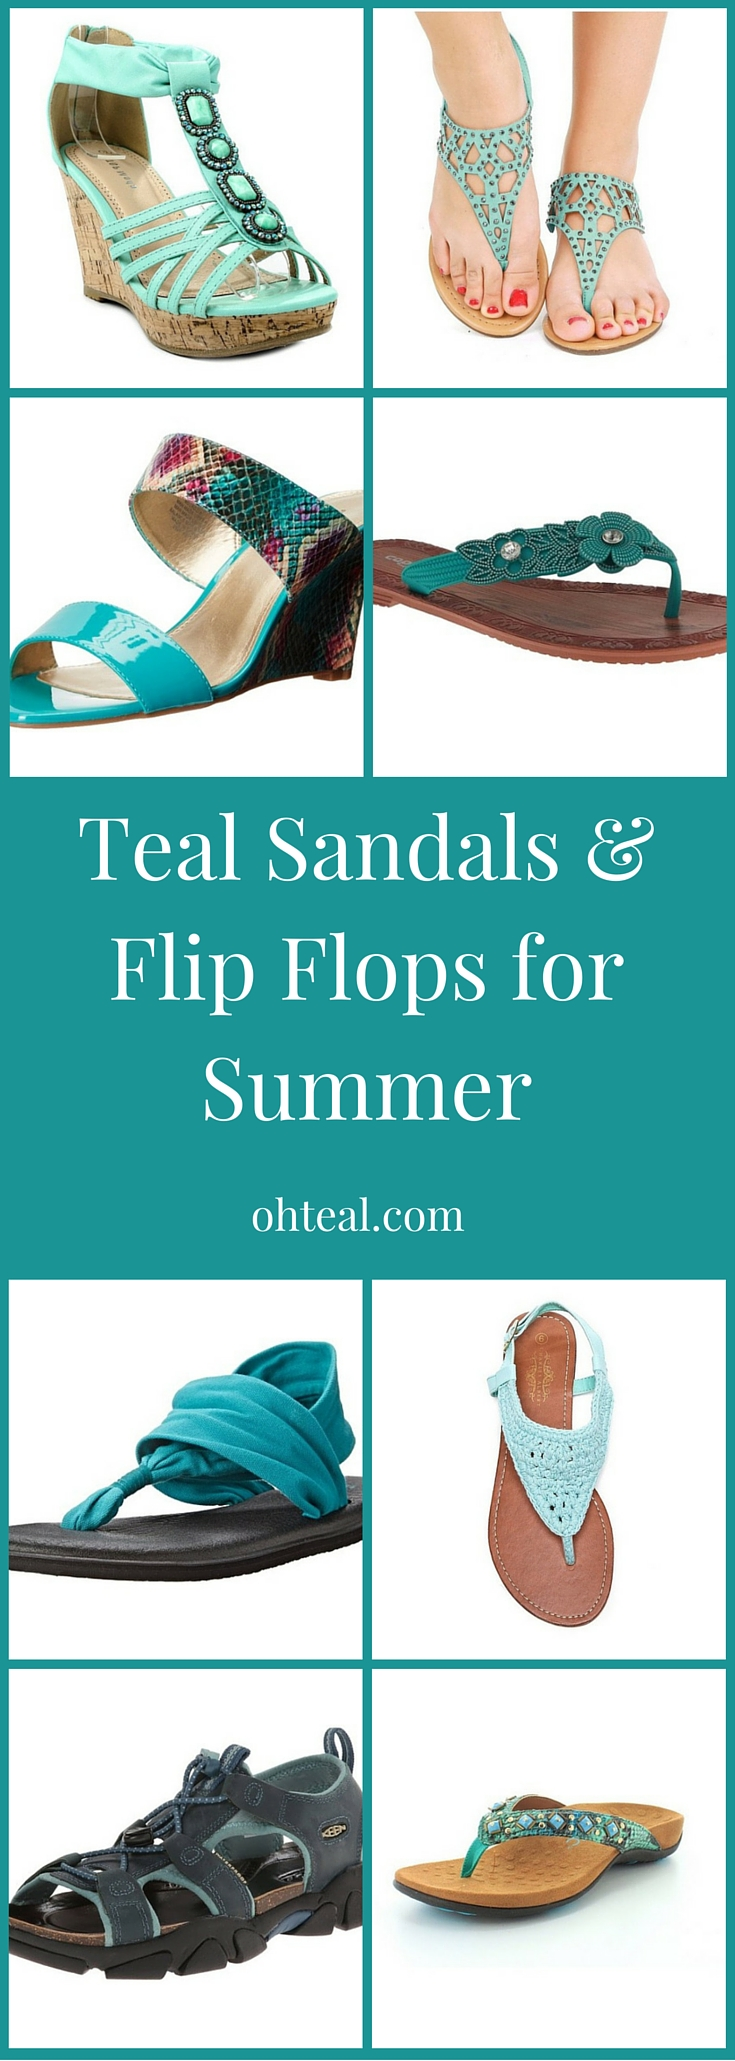 Teal Sandals & Flip Flops for Summer